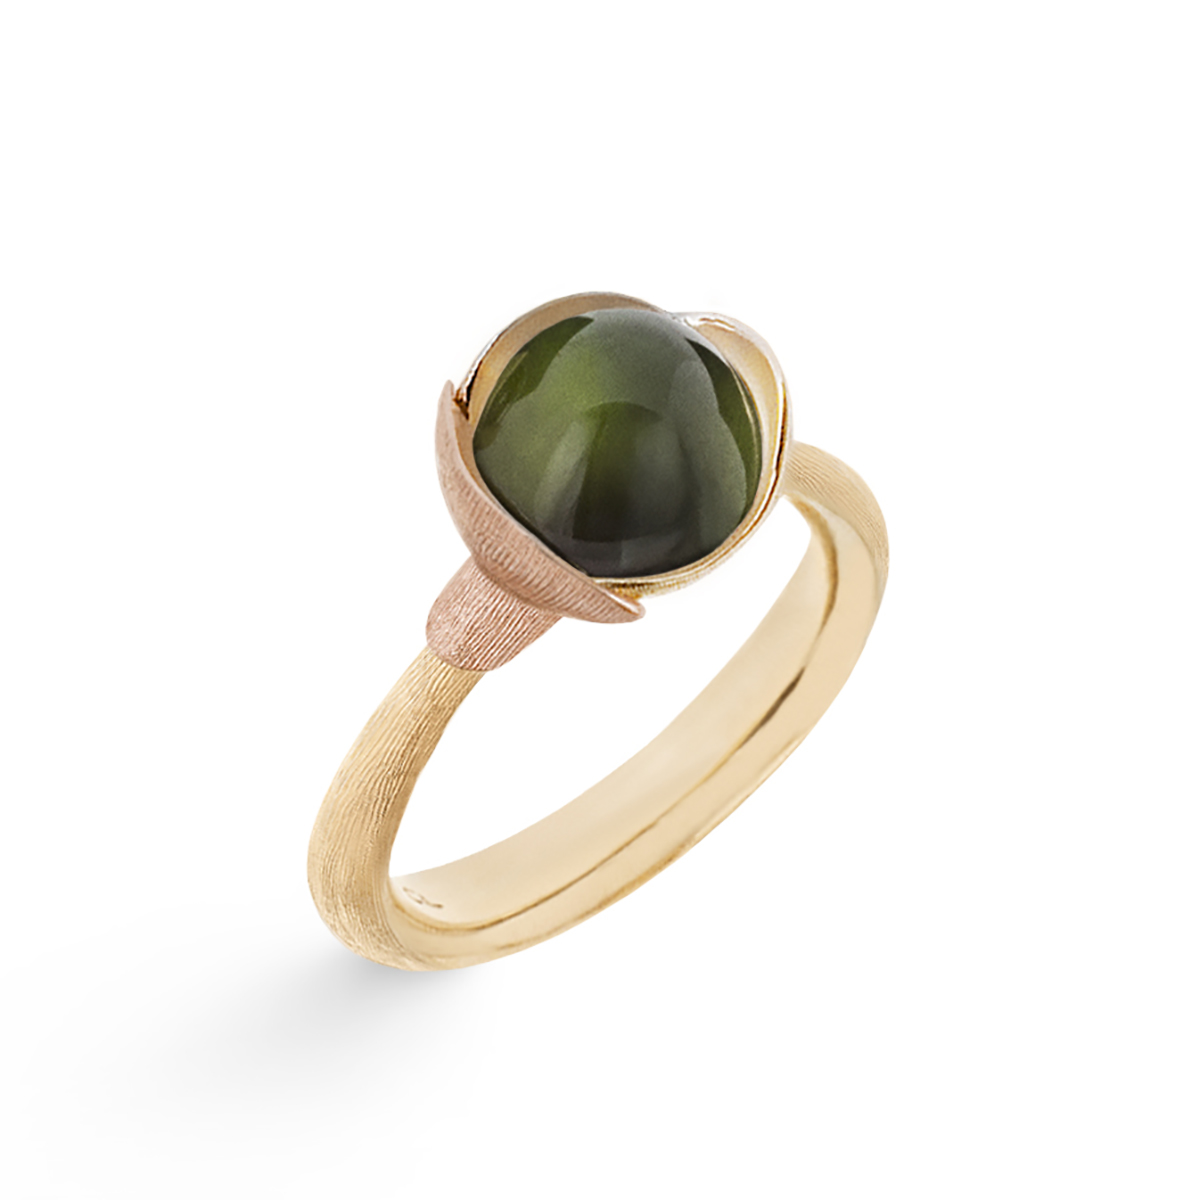 Ole_Lynggaard_Lotus_Ring-1_Green-Tourmaline